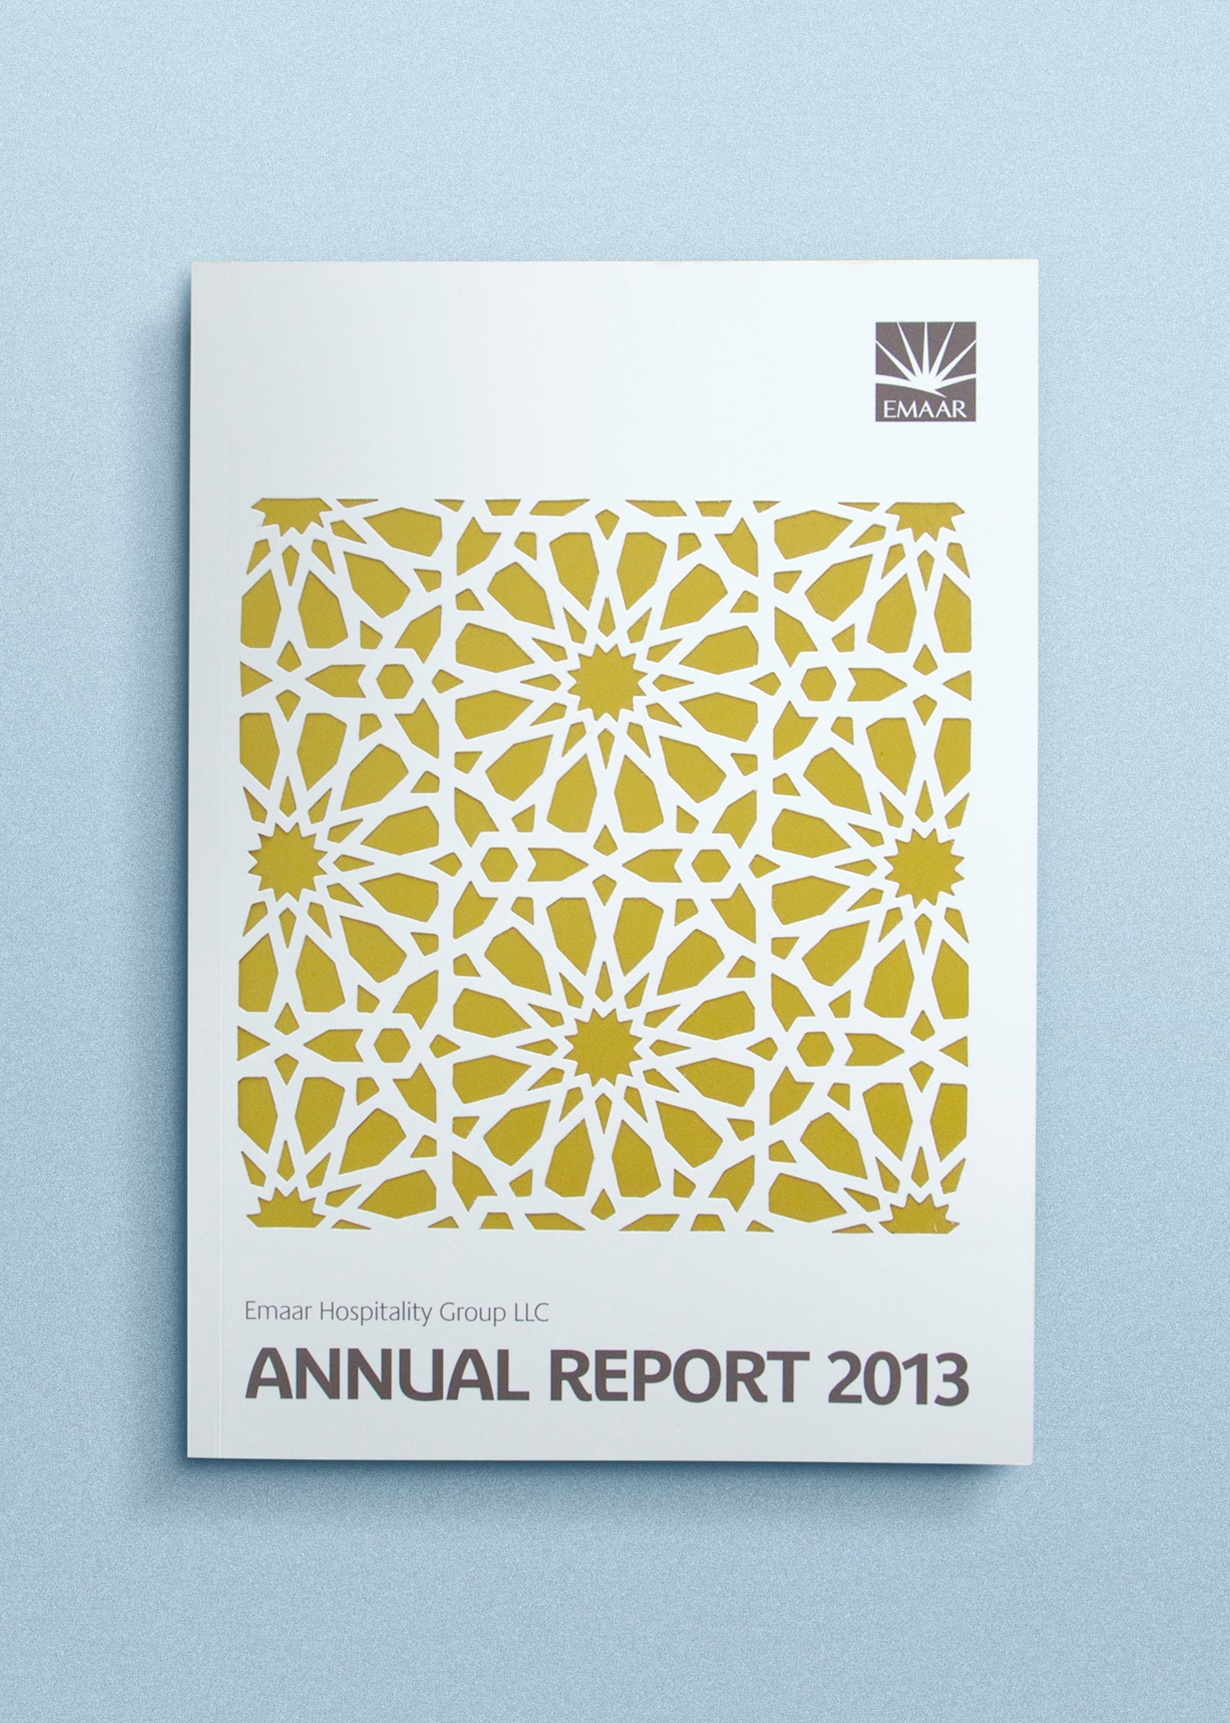 Concept Design and Layout and Copywriting of Emaar Hospitality Group Annual Report 2013